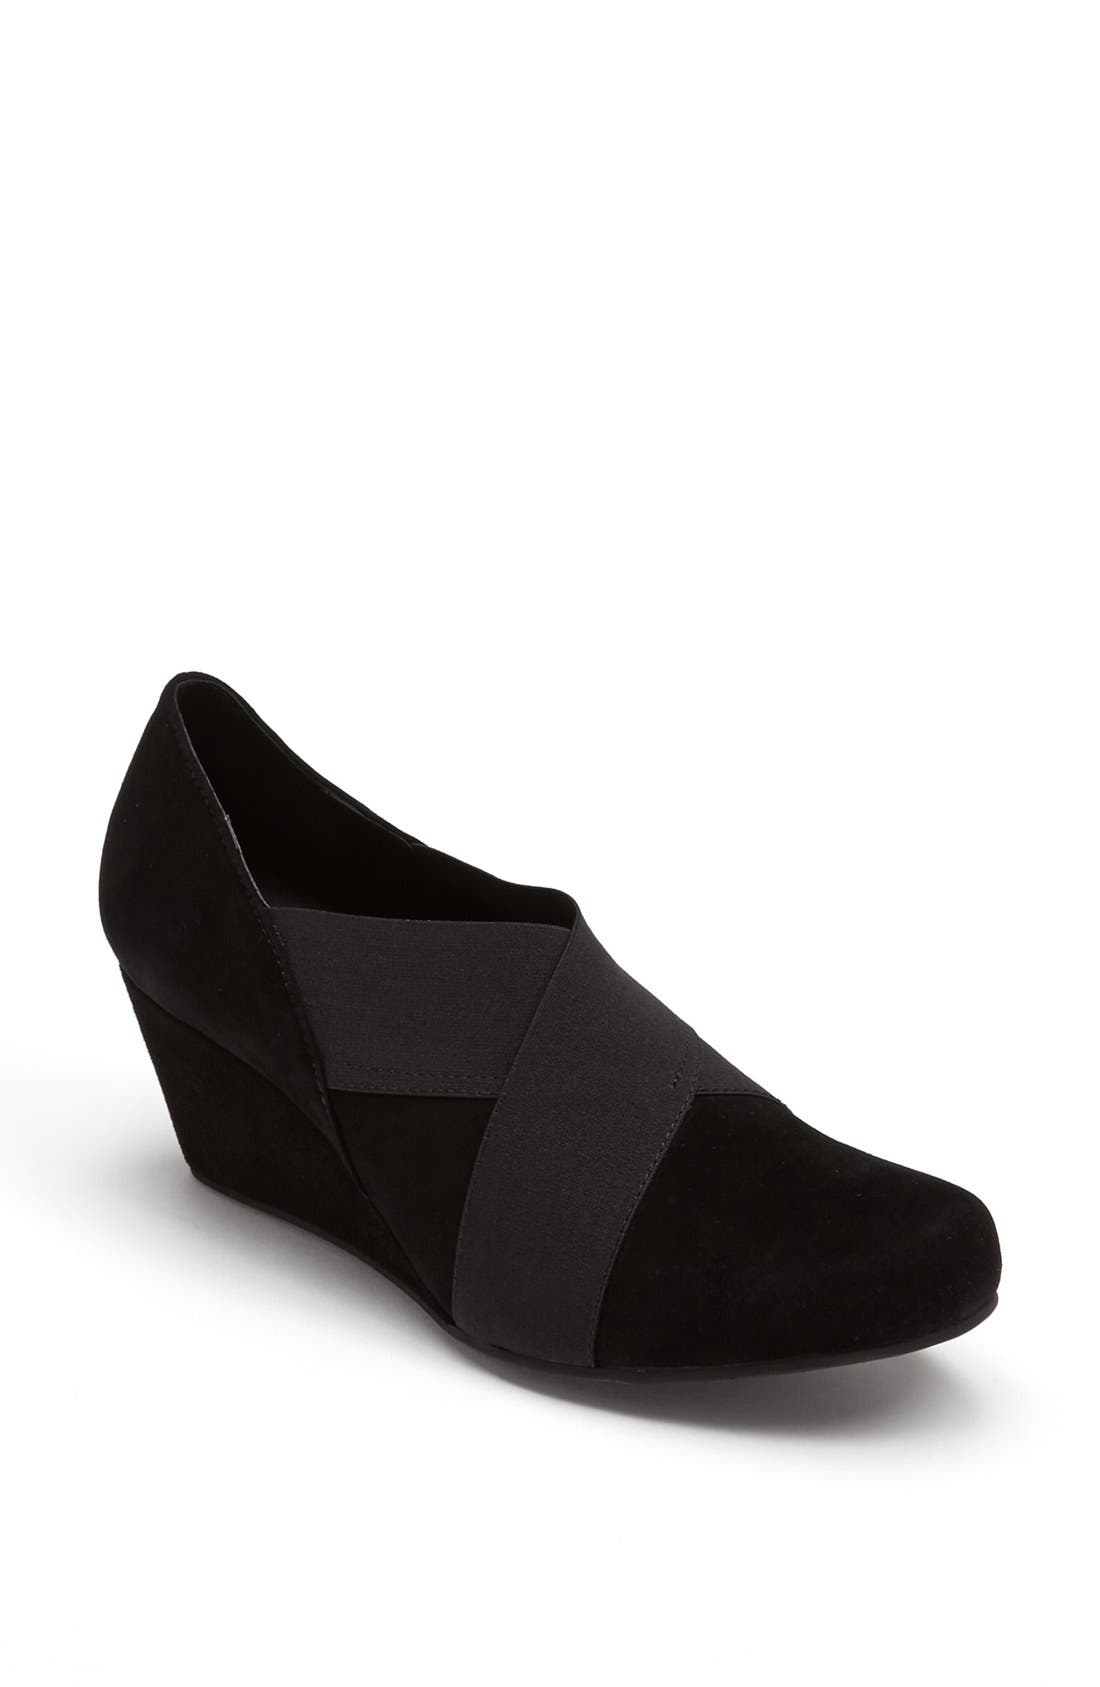 Main Image - Cordani 'Brattle' Wedge Pump